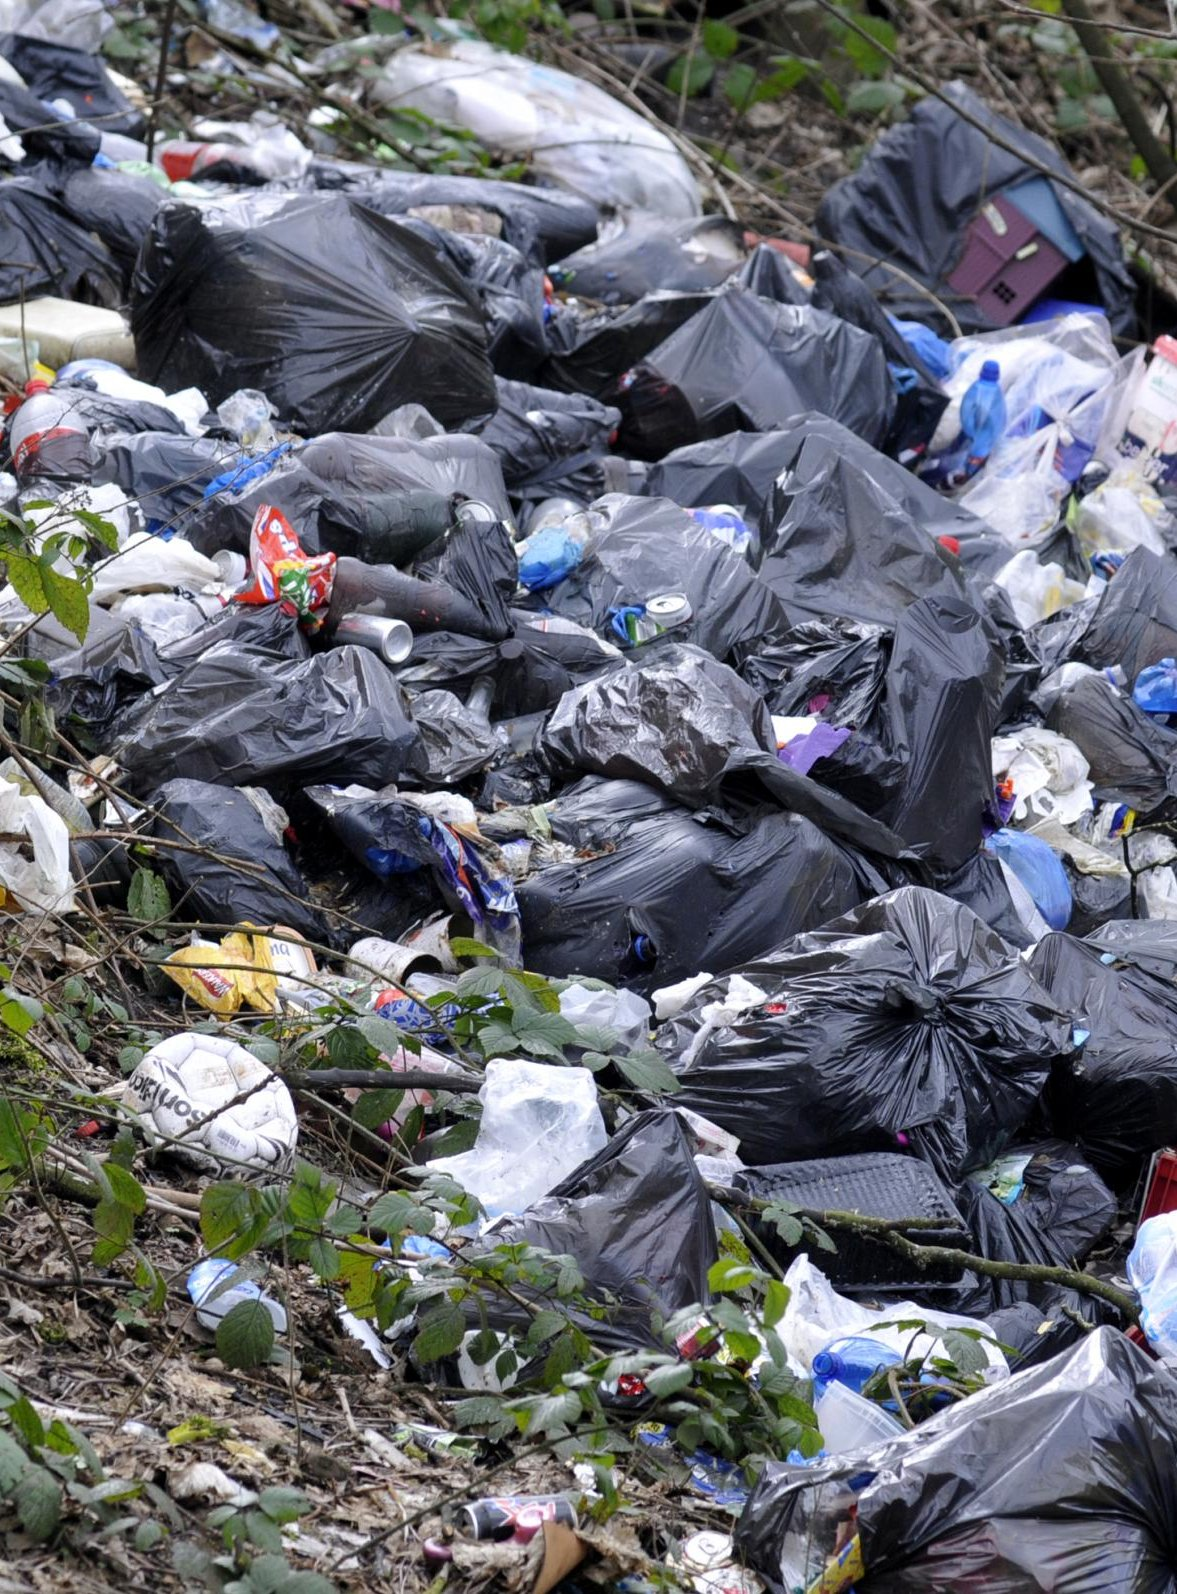 Environment Secretary Andrea Leadsom has announced a crackdown on litter louts